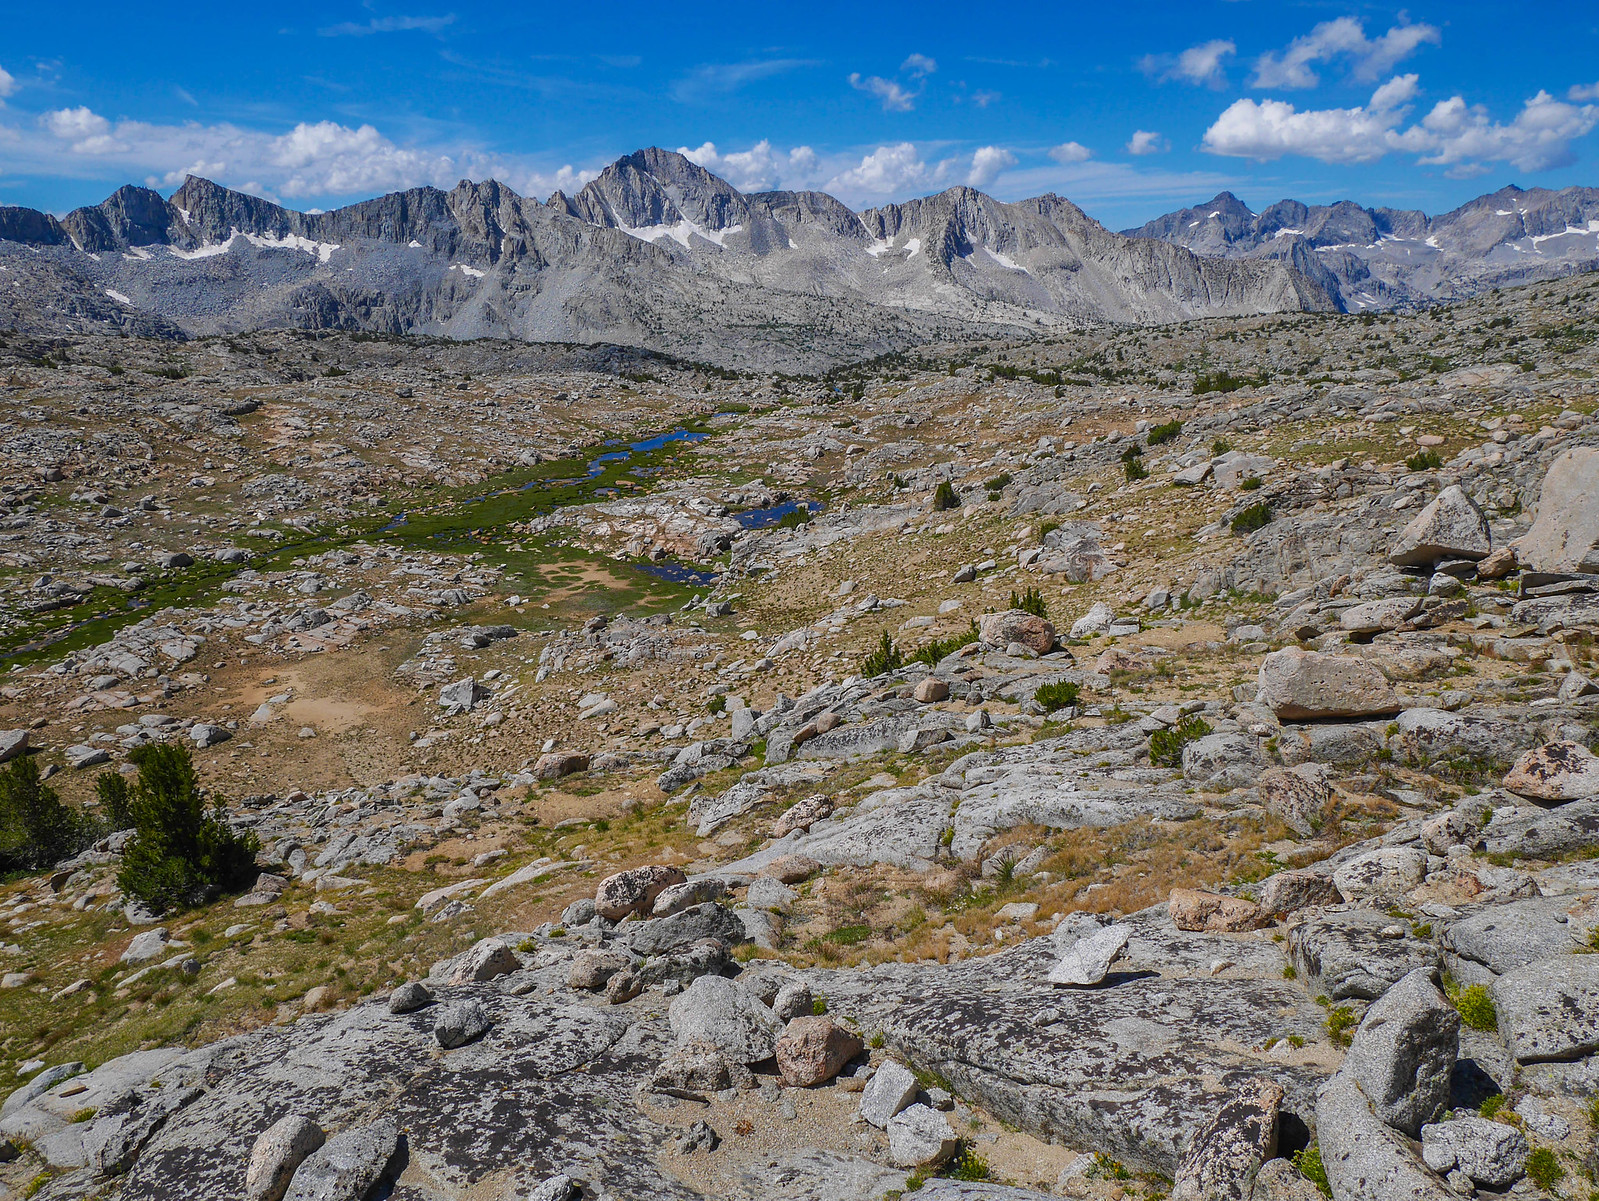 Looking down on Upper Dusy Basin